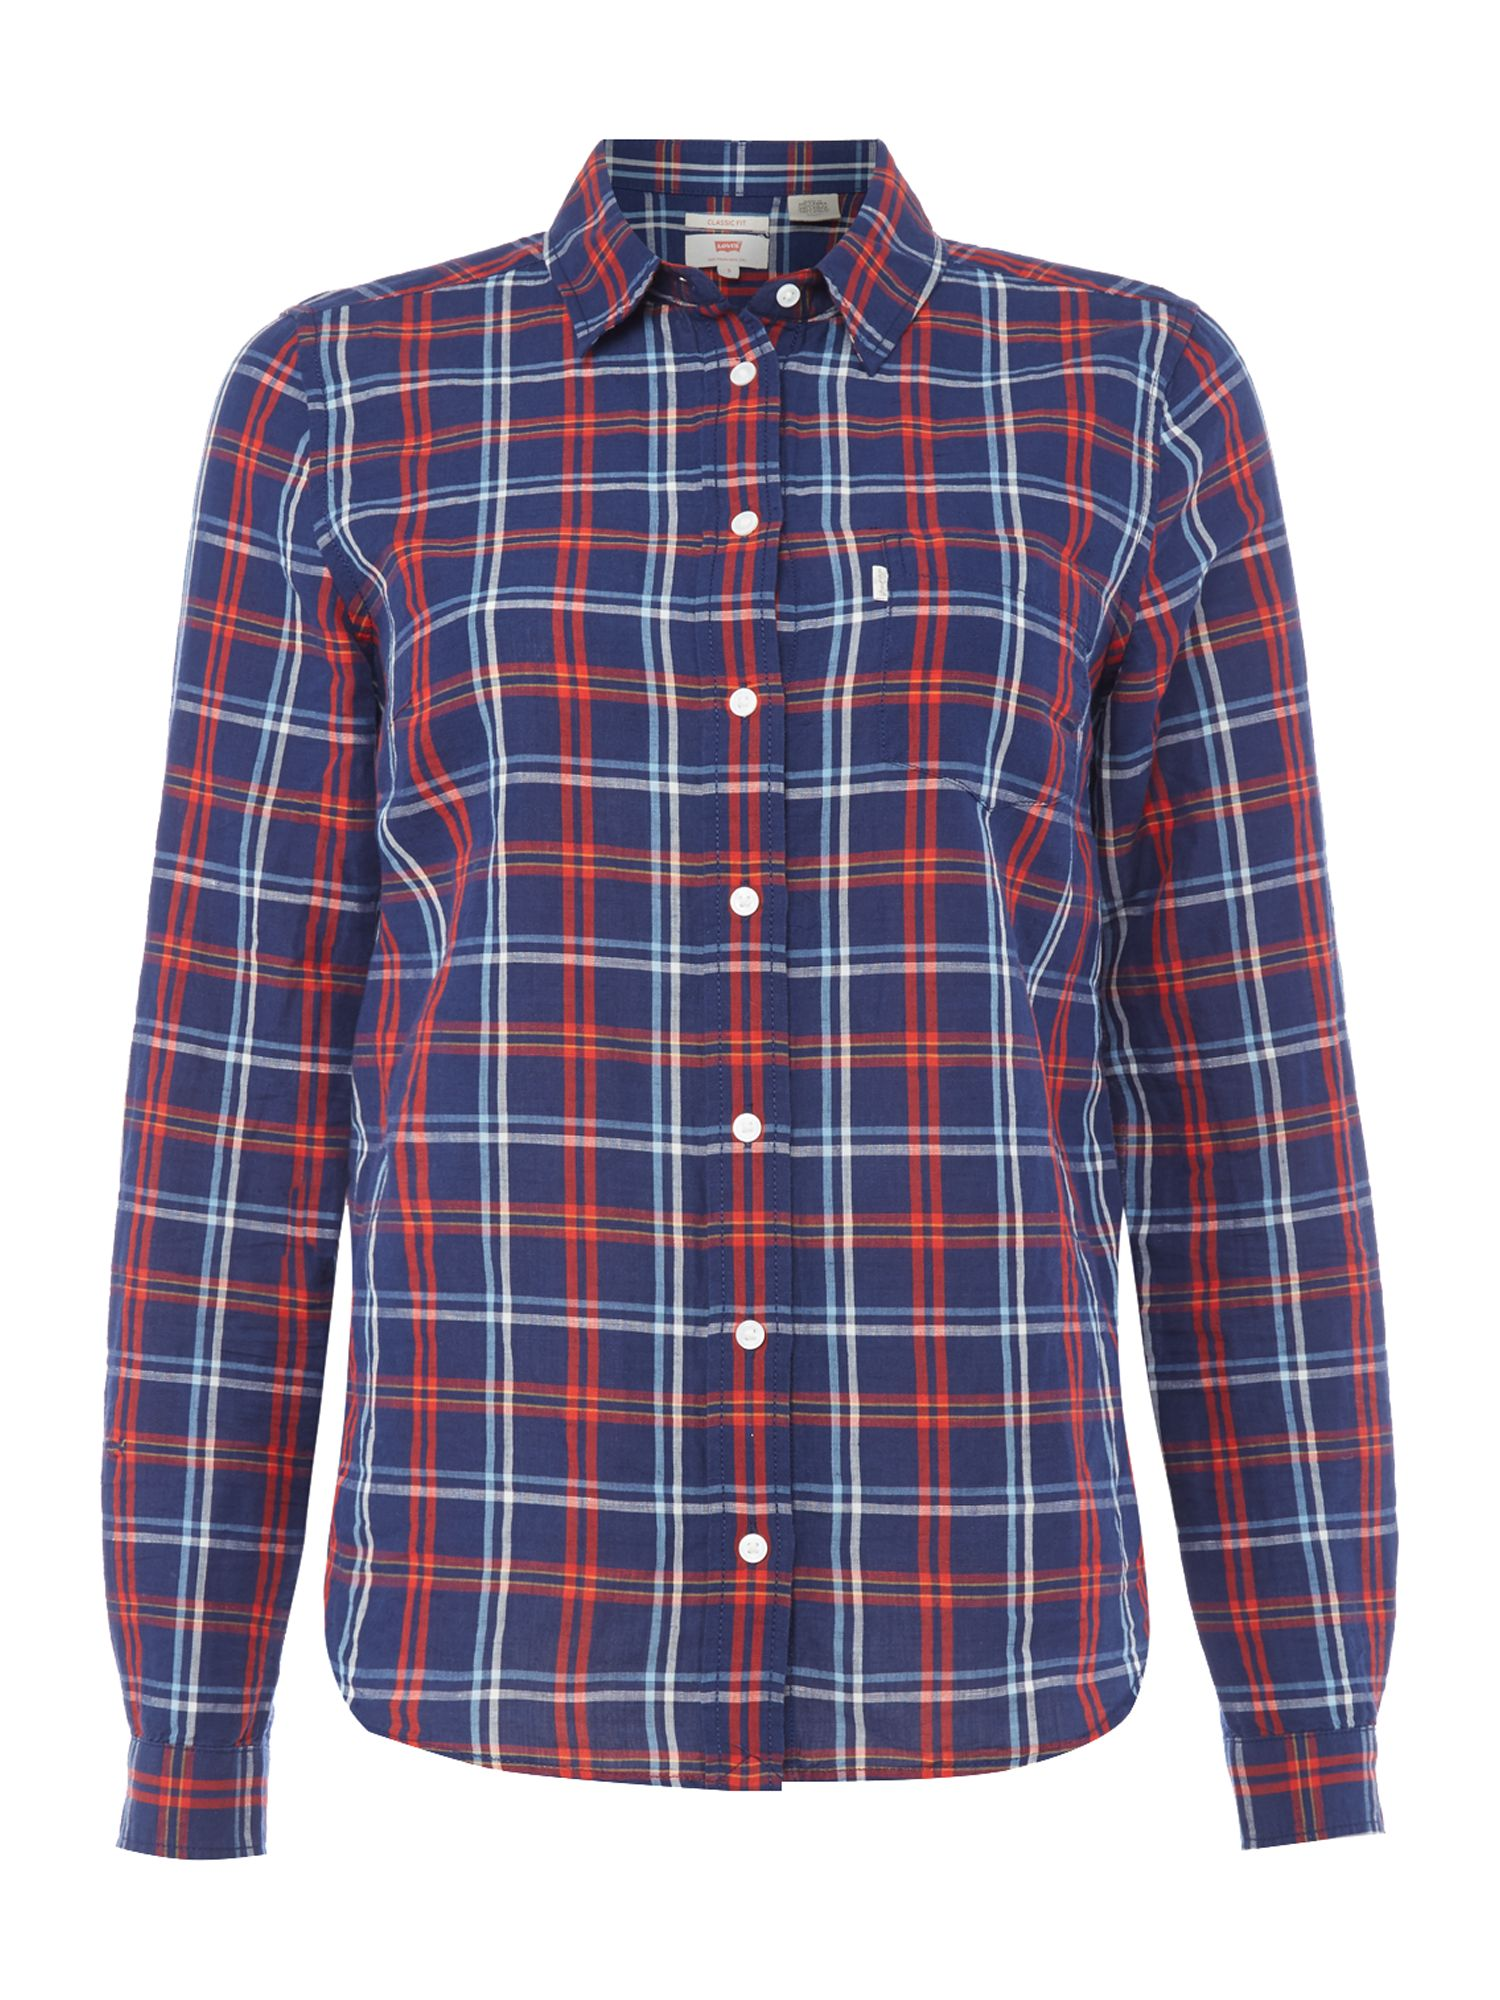 Levi's Long Sleeve shirt in Cittern Medieval Blue Plaid, Blue